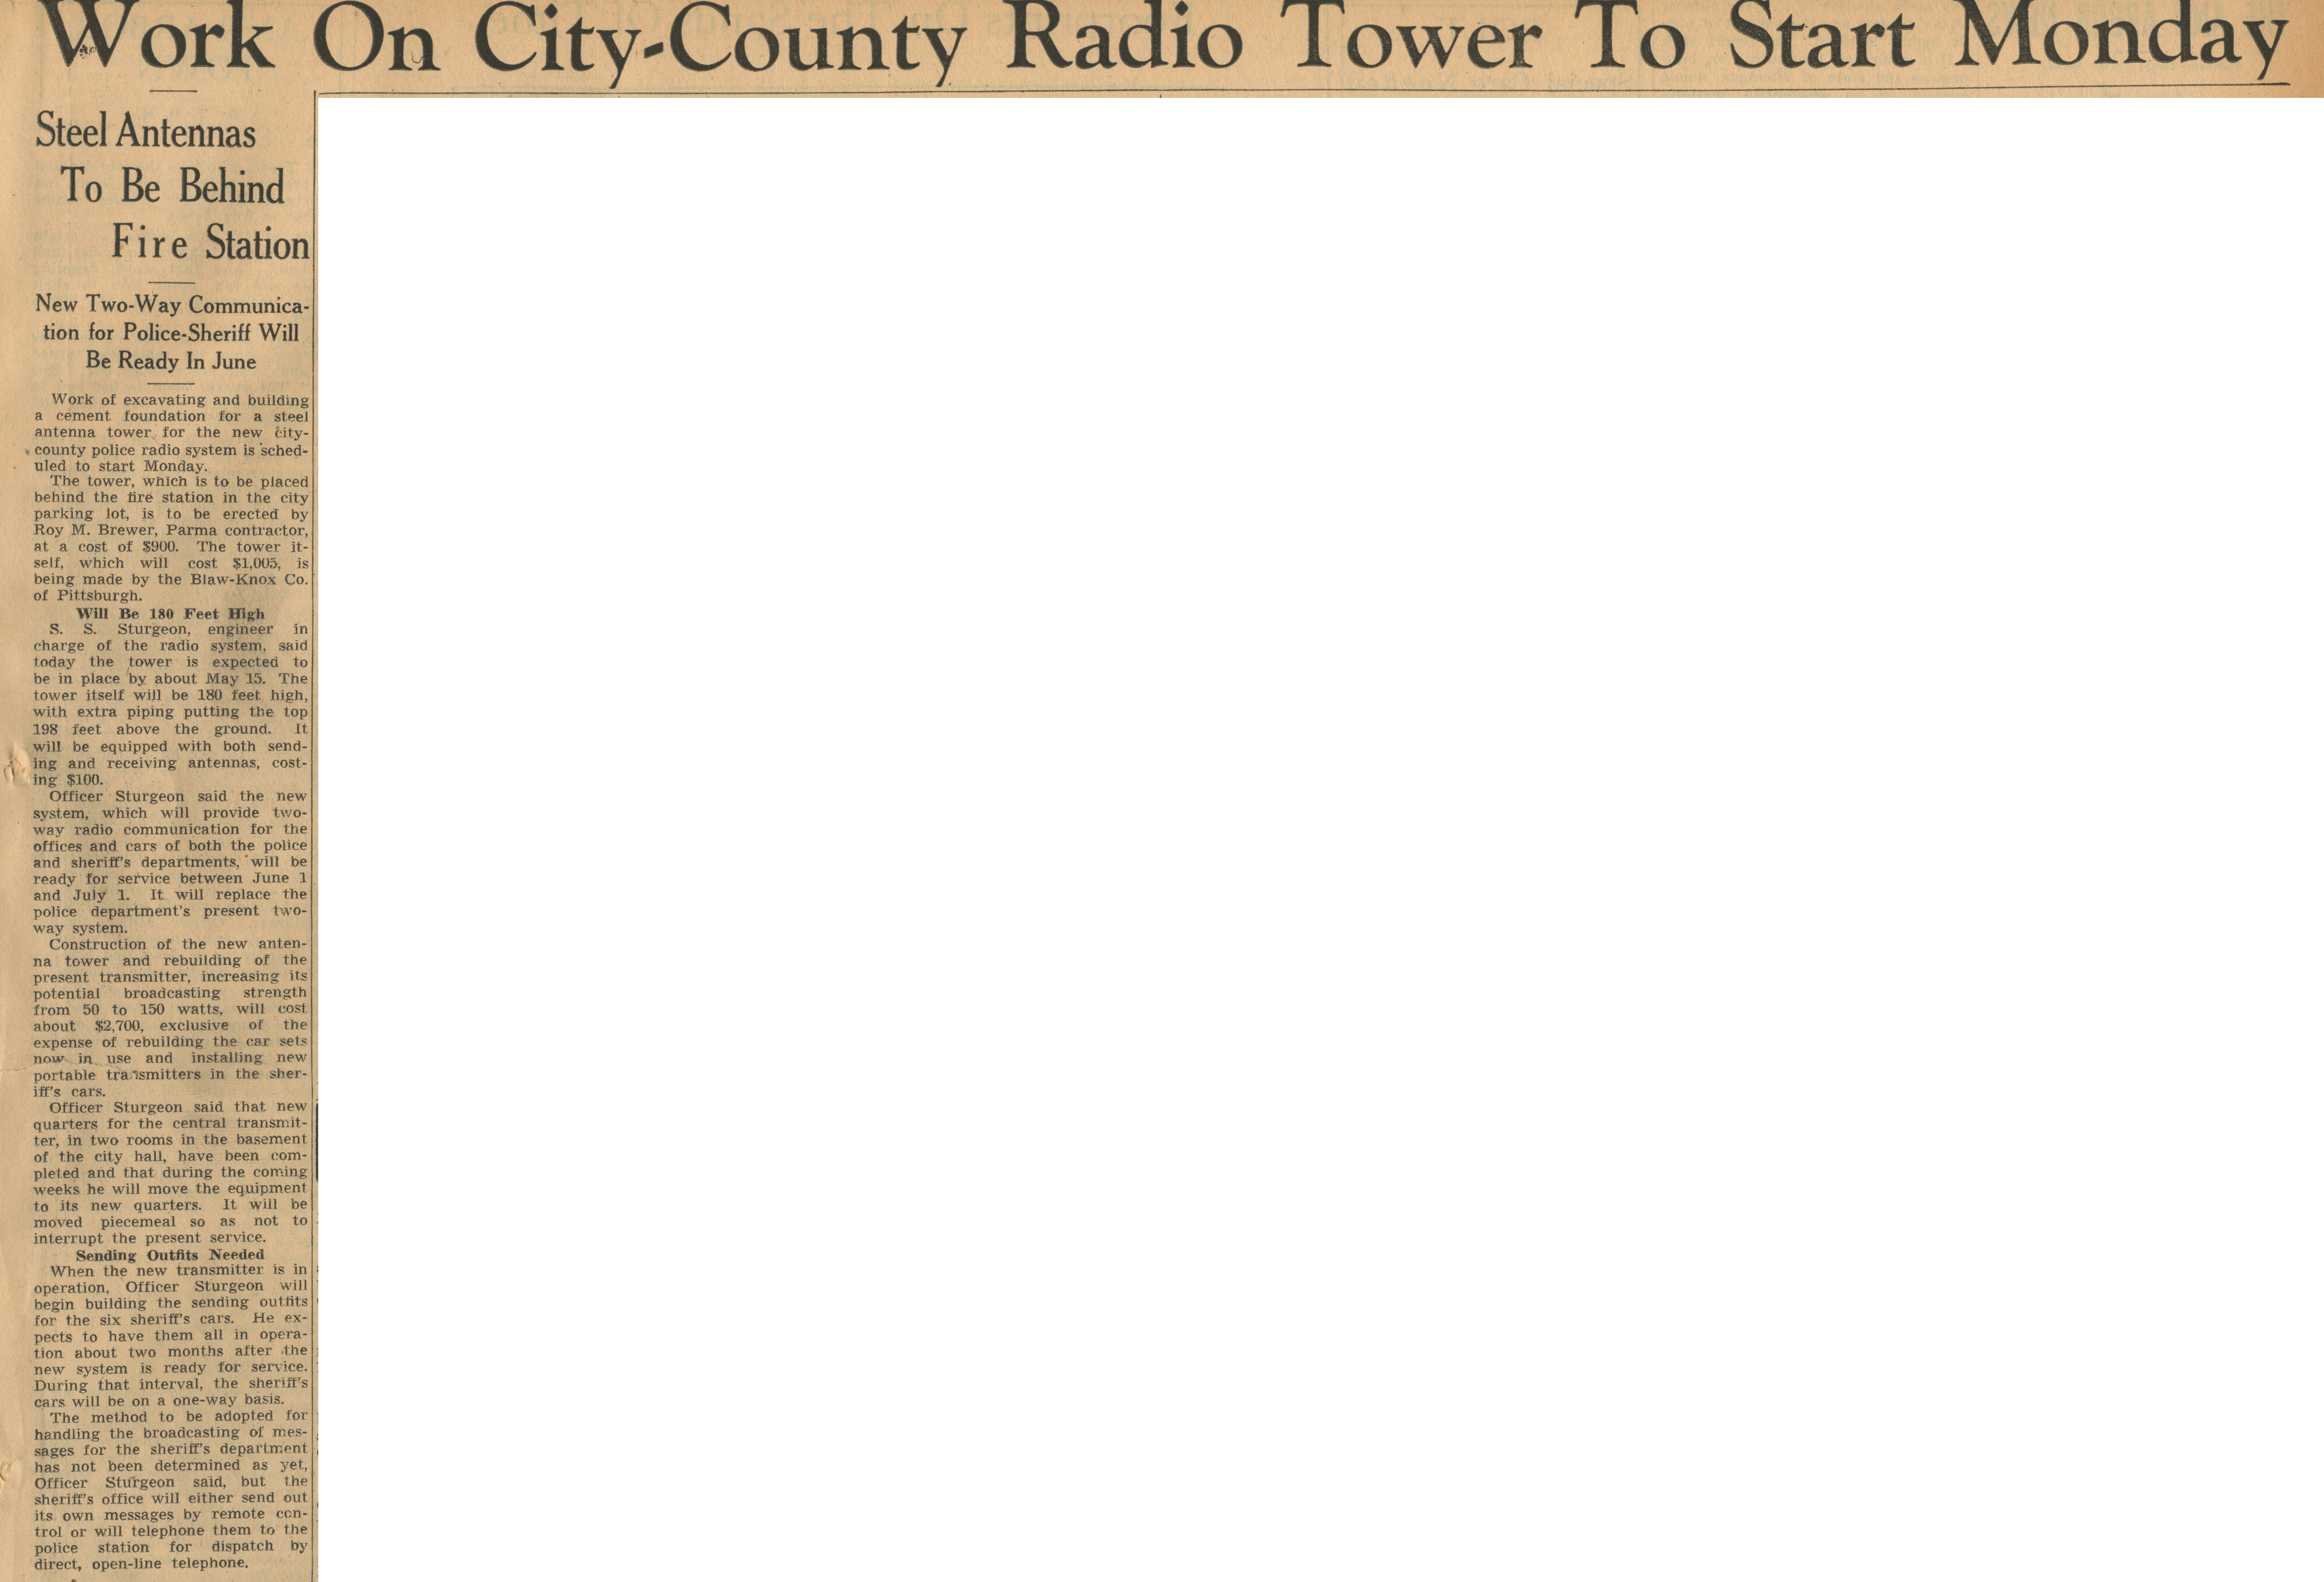 Work On City-County Radio Tower To Start Monday image